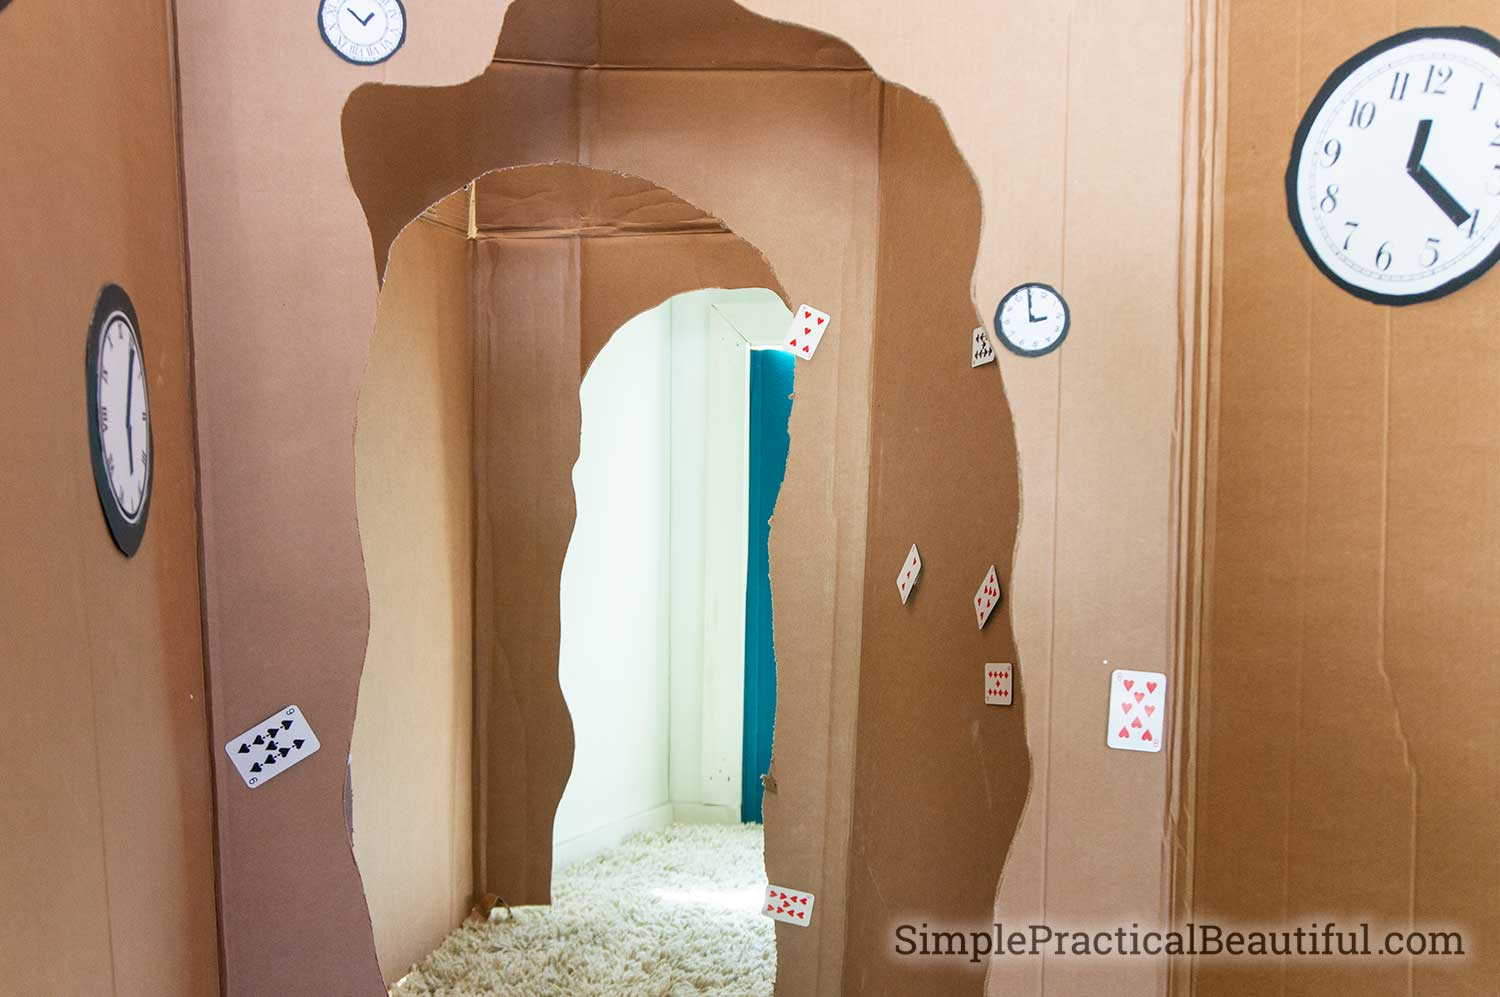 A cardboard rabbit hole that leads to the entrance of an Alice in Wonderland party and a Mad Hatter's Tea party